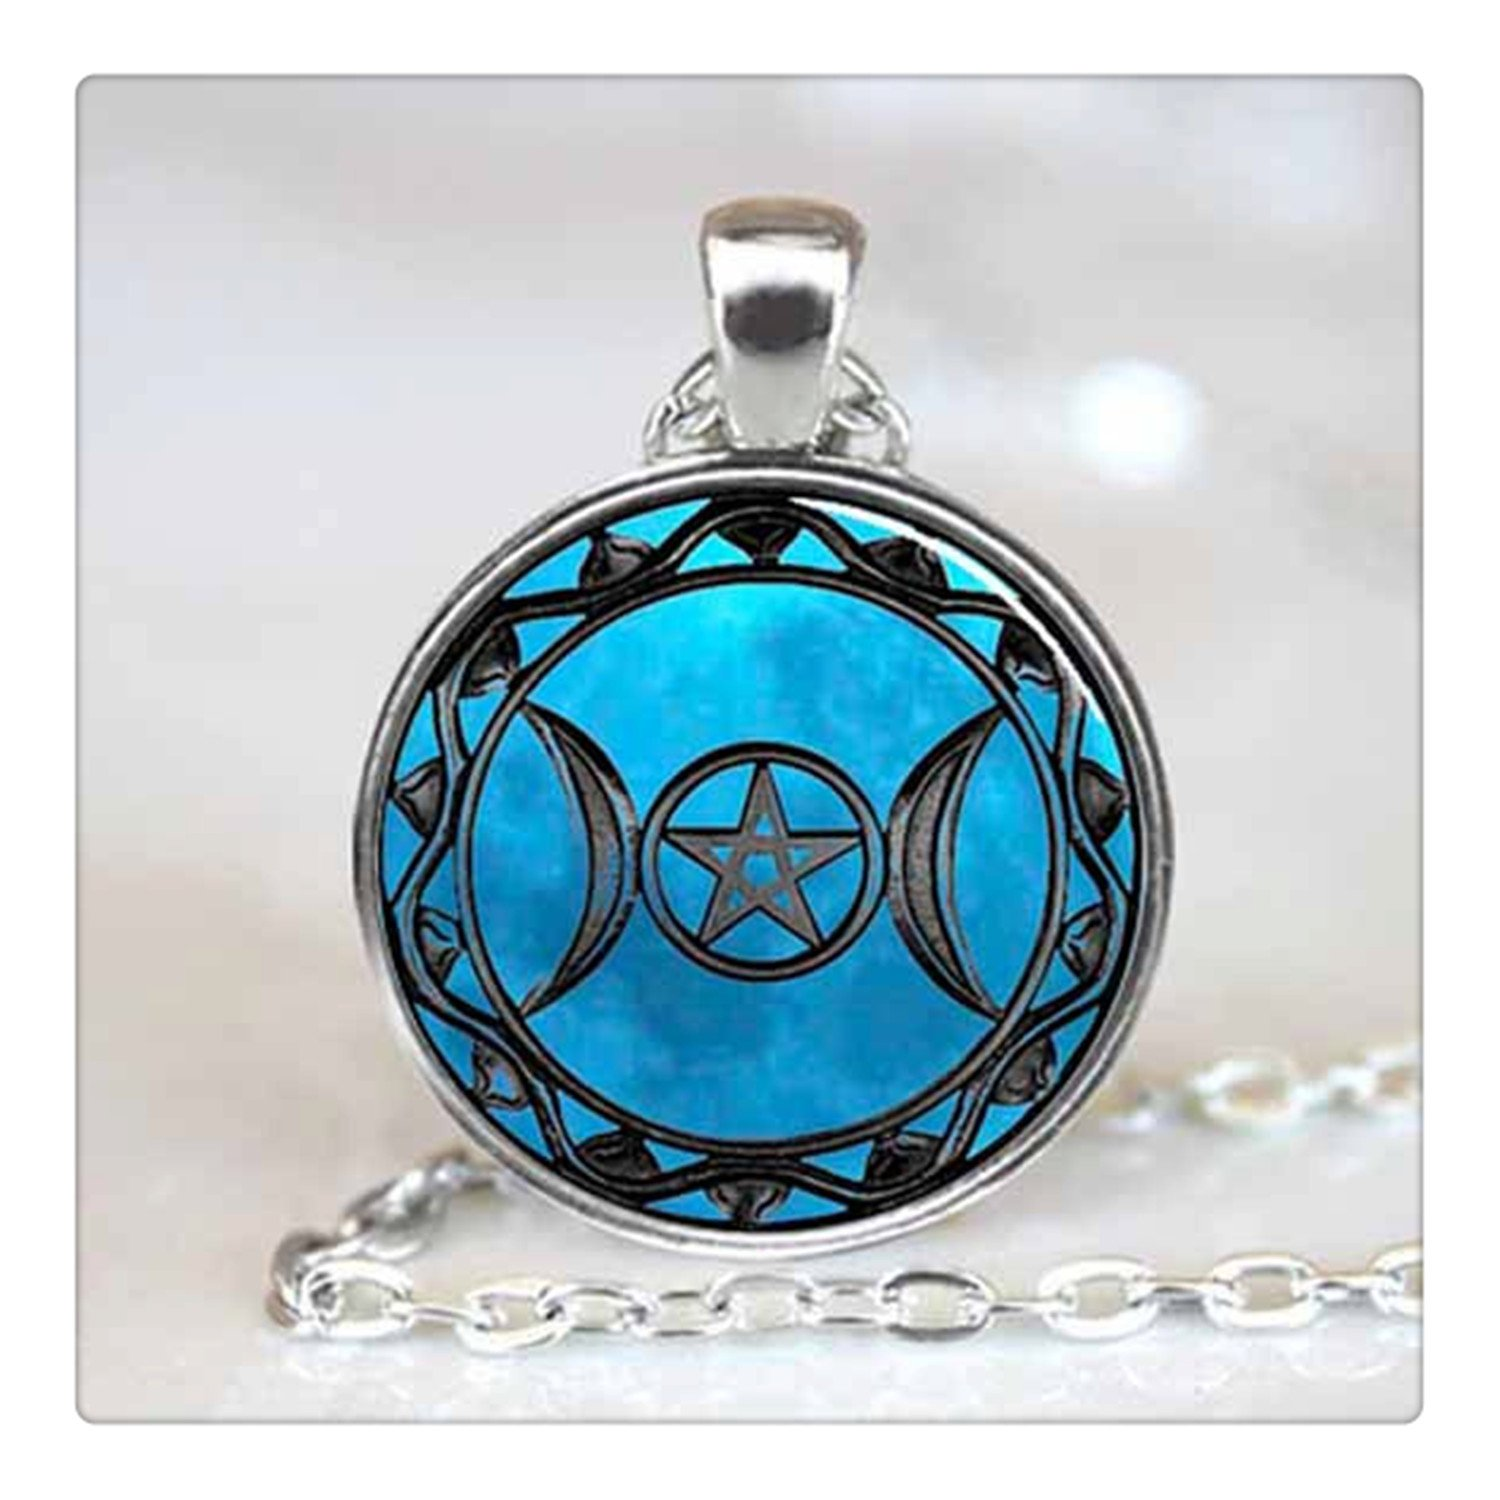 goddess pendant key fob keychain jewelry amazon com dp wiccan triple necklace moon